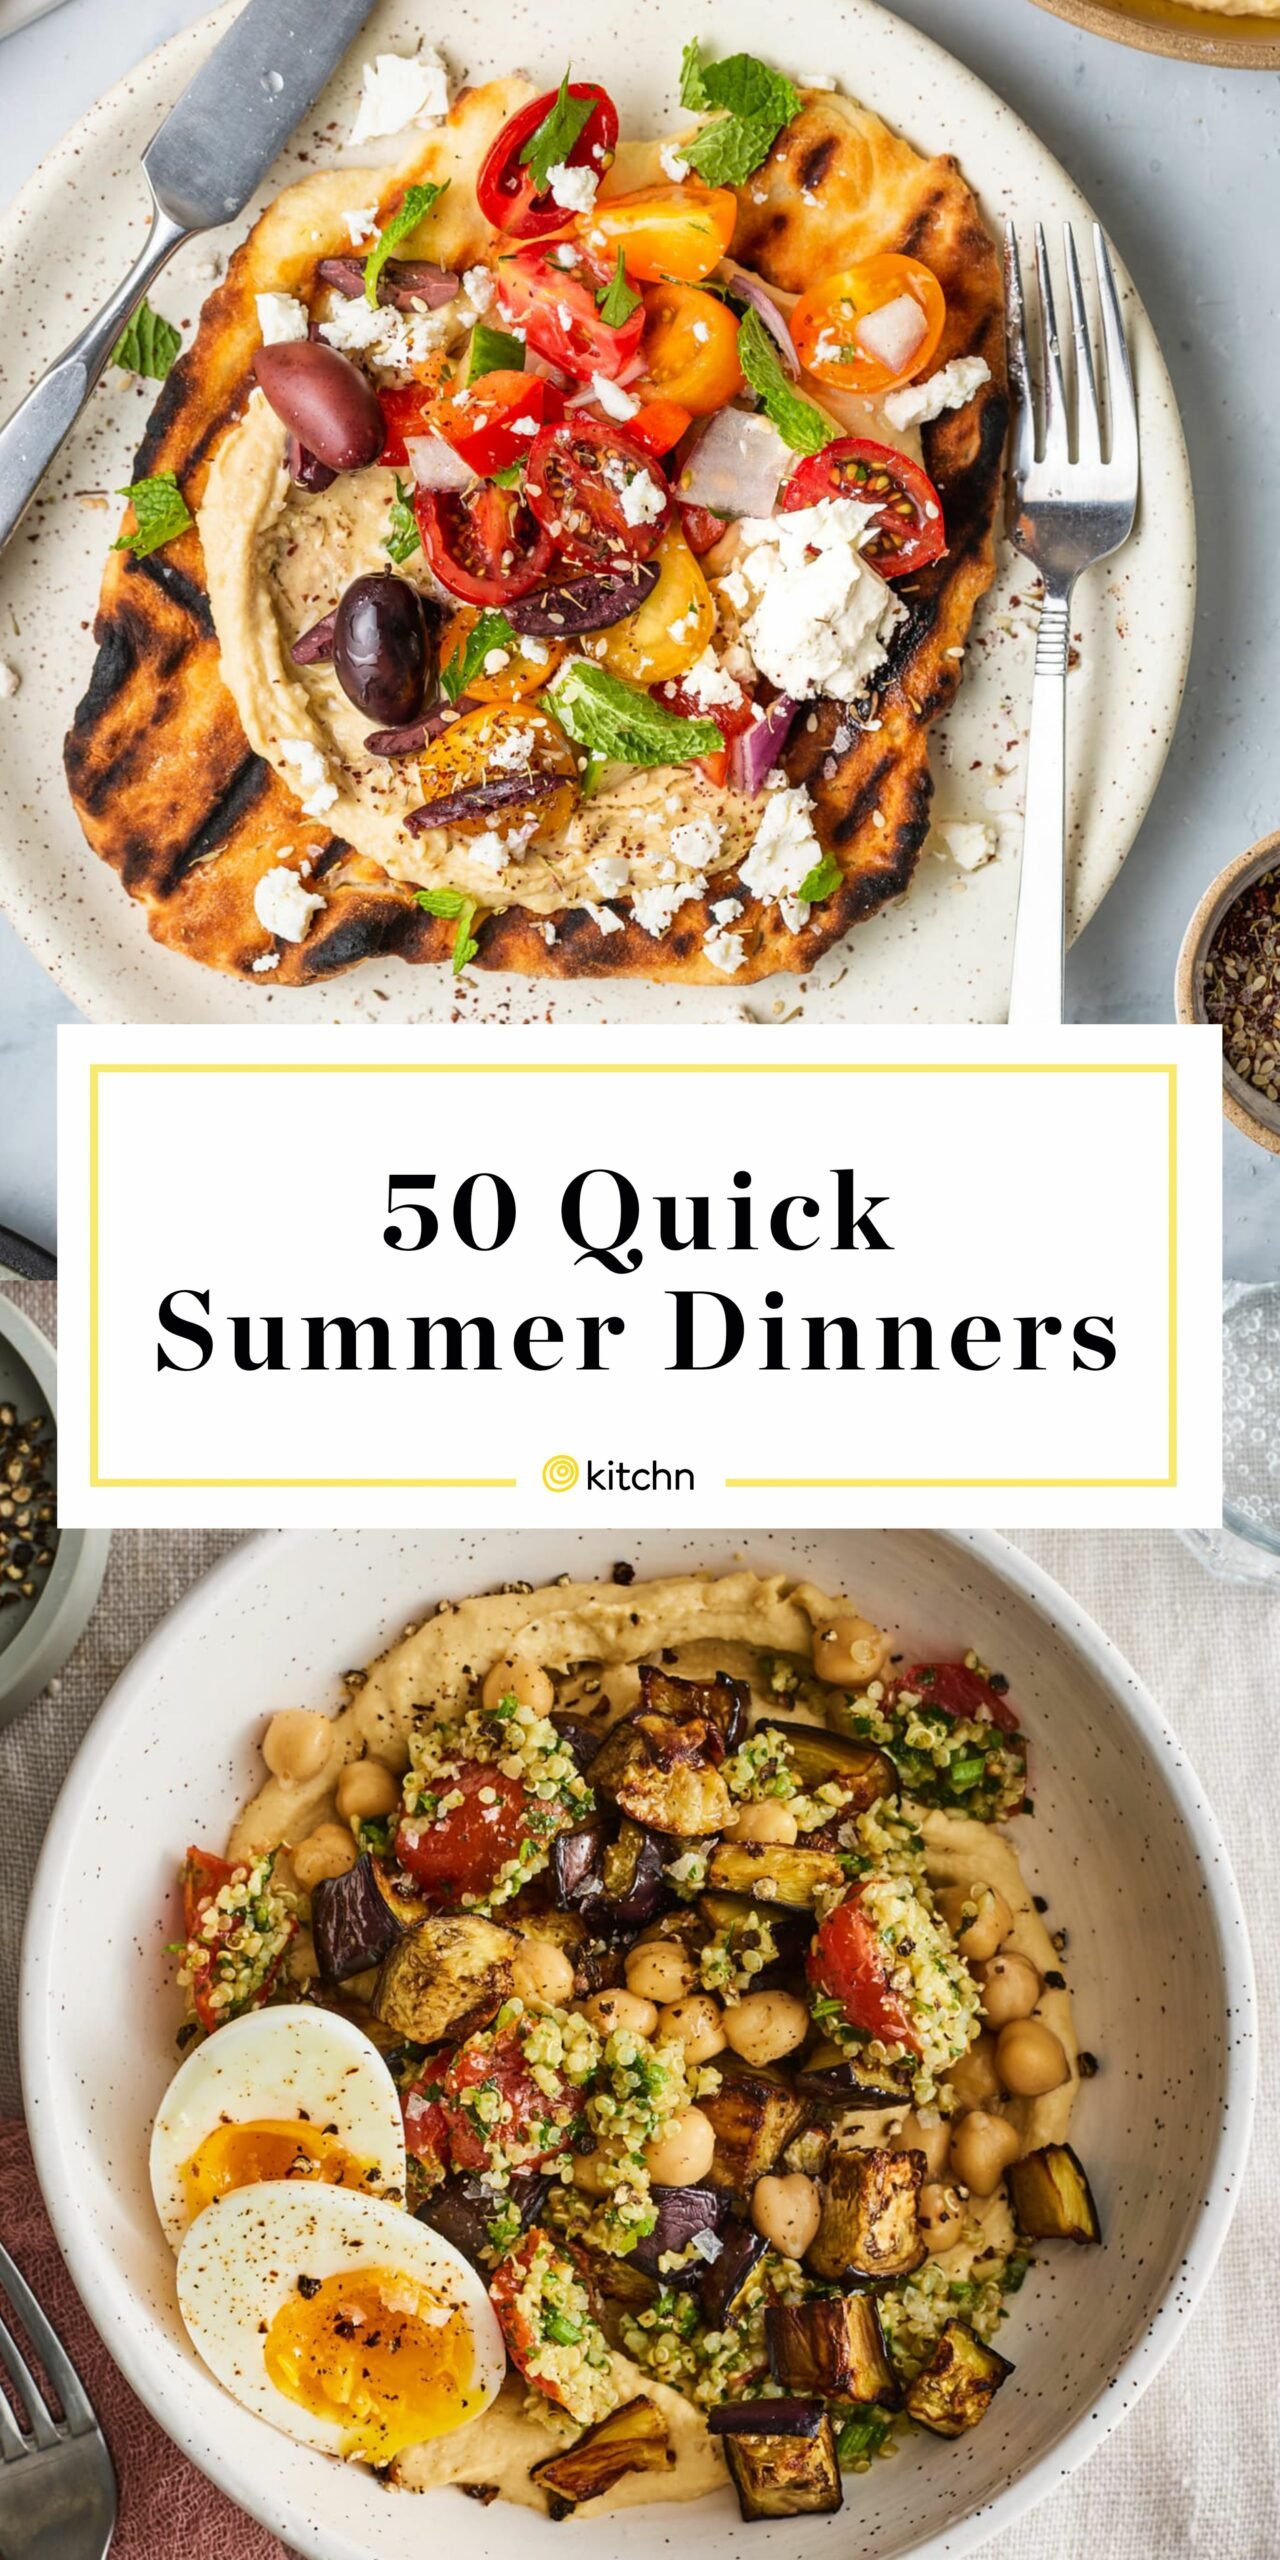 Quick & Easy Summer Suppers | Kitchn - Summer Recipes Kitchn